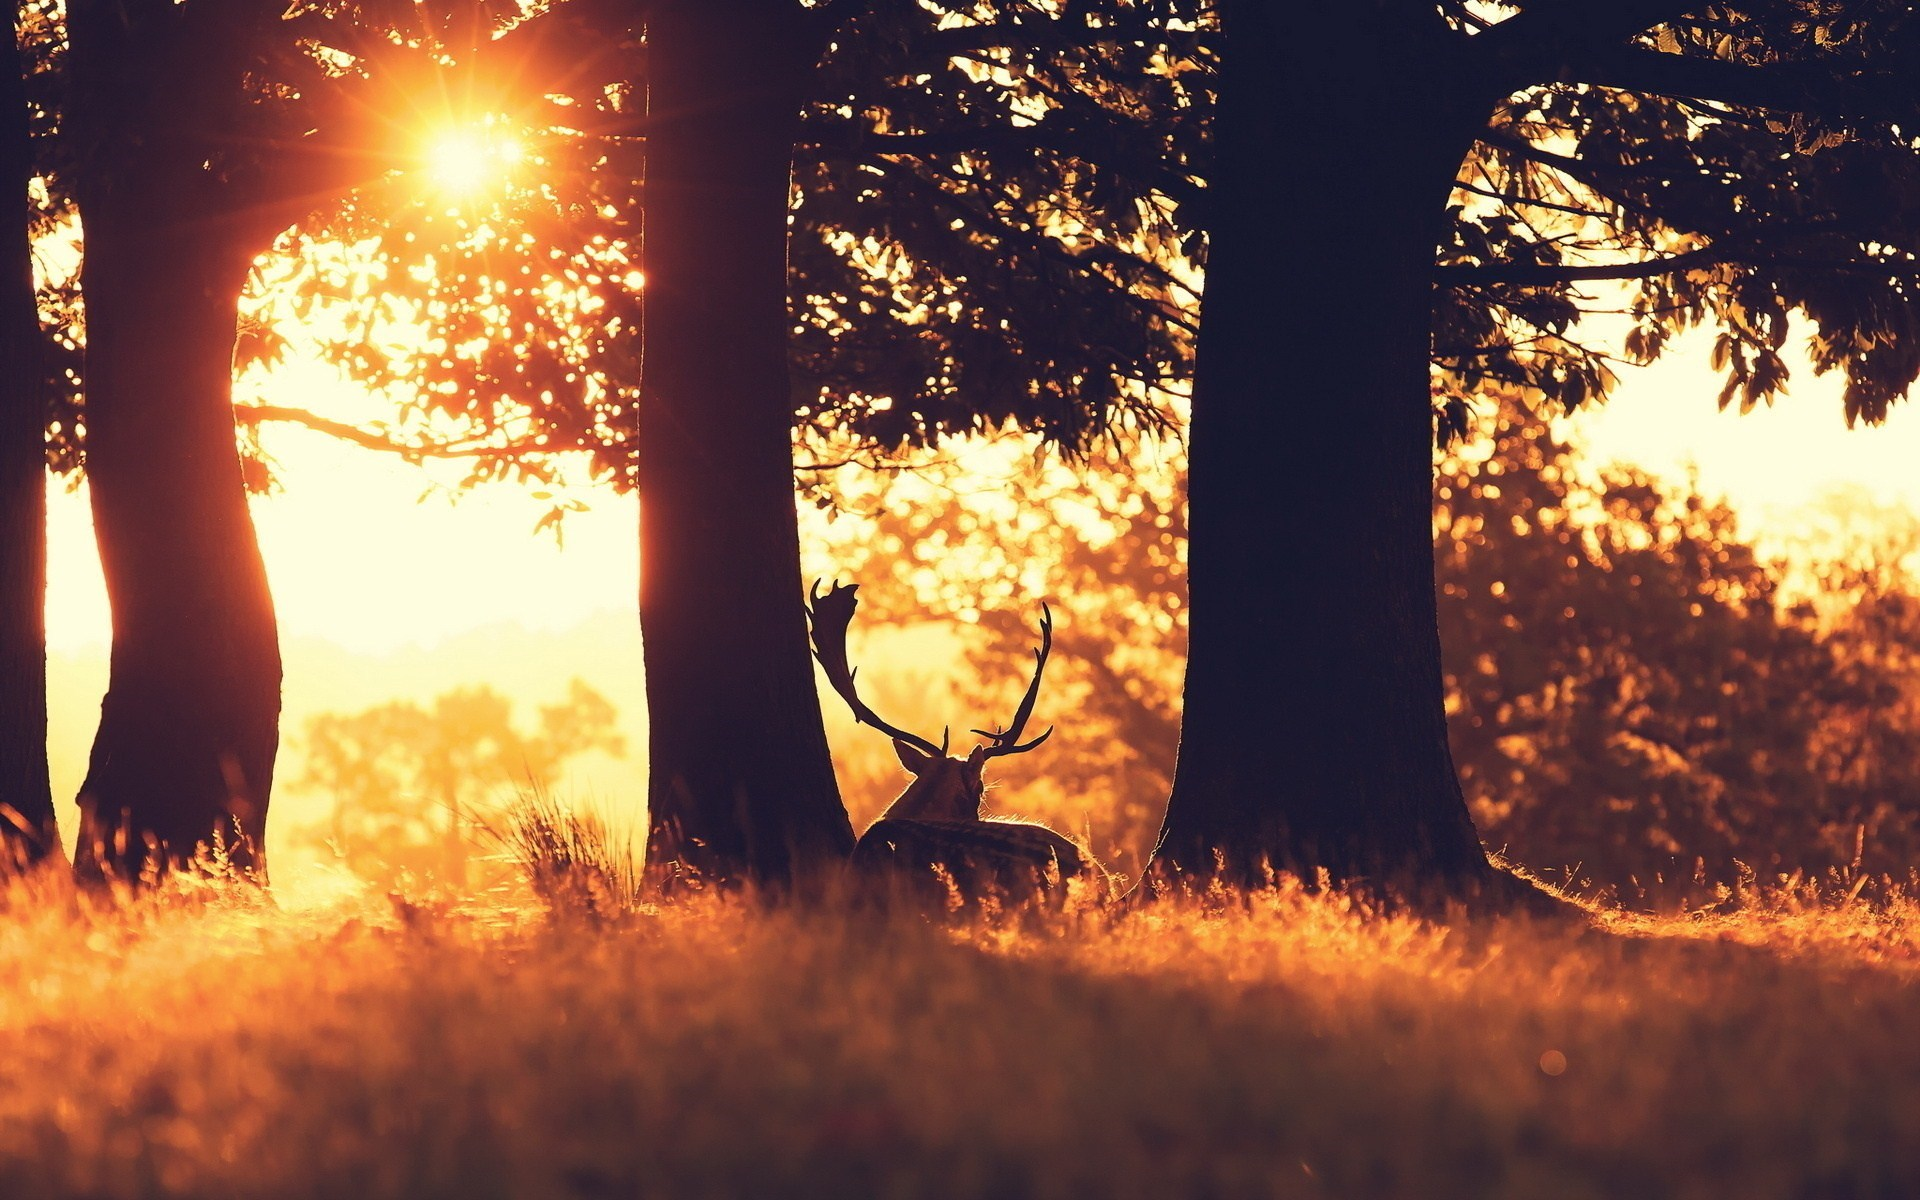 Sun Forest Animal Deer Photo